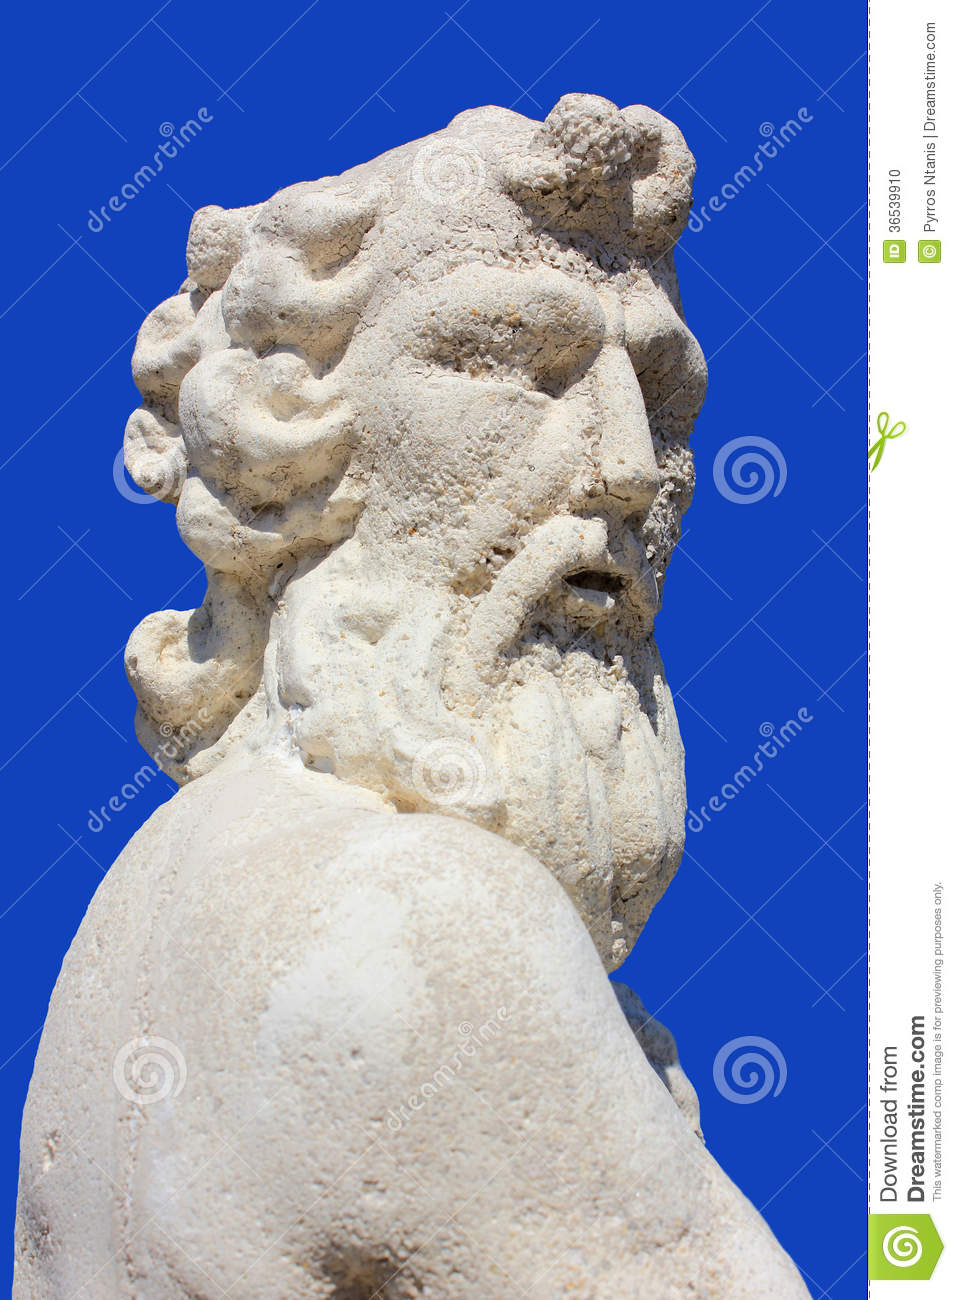 Poseidon statueat zakynthos island greece stock photo image 36539910 - Poseidon statue greece ...